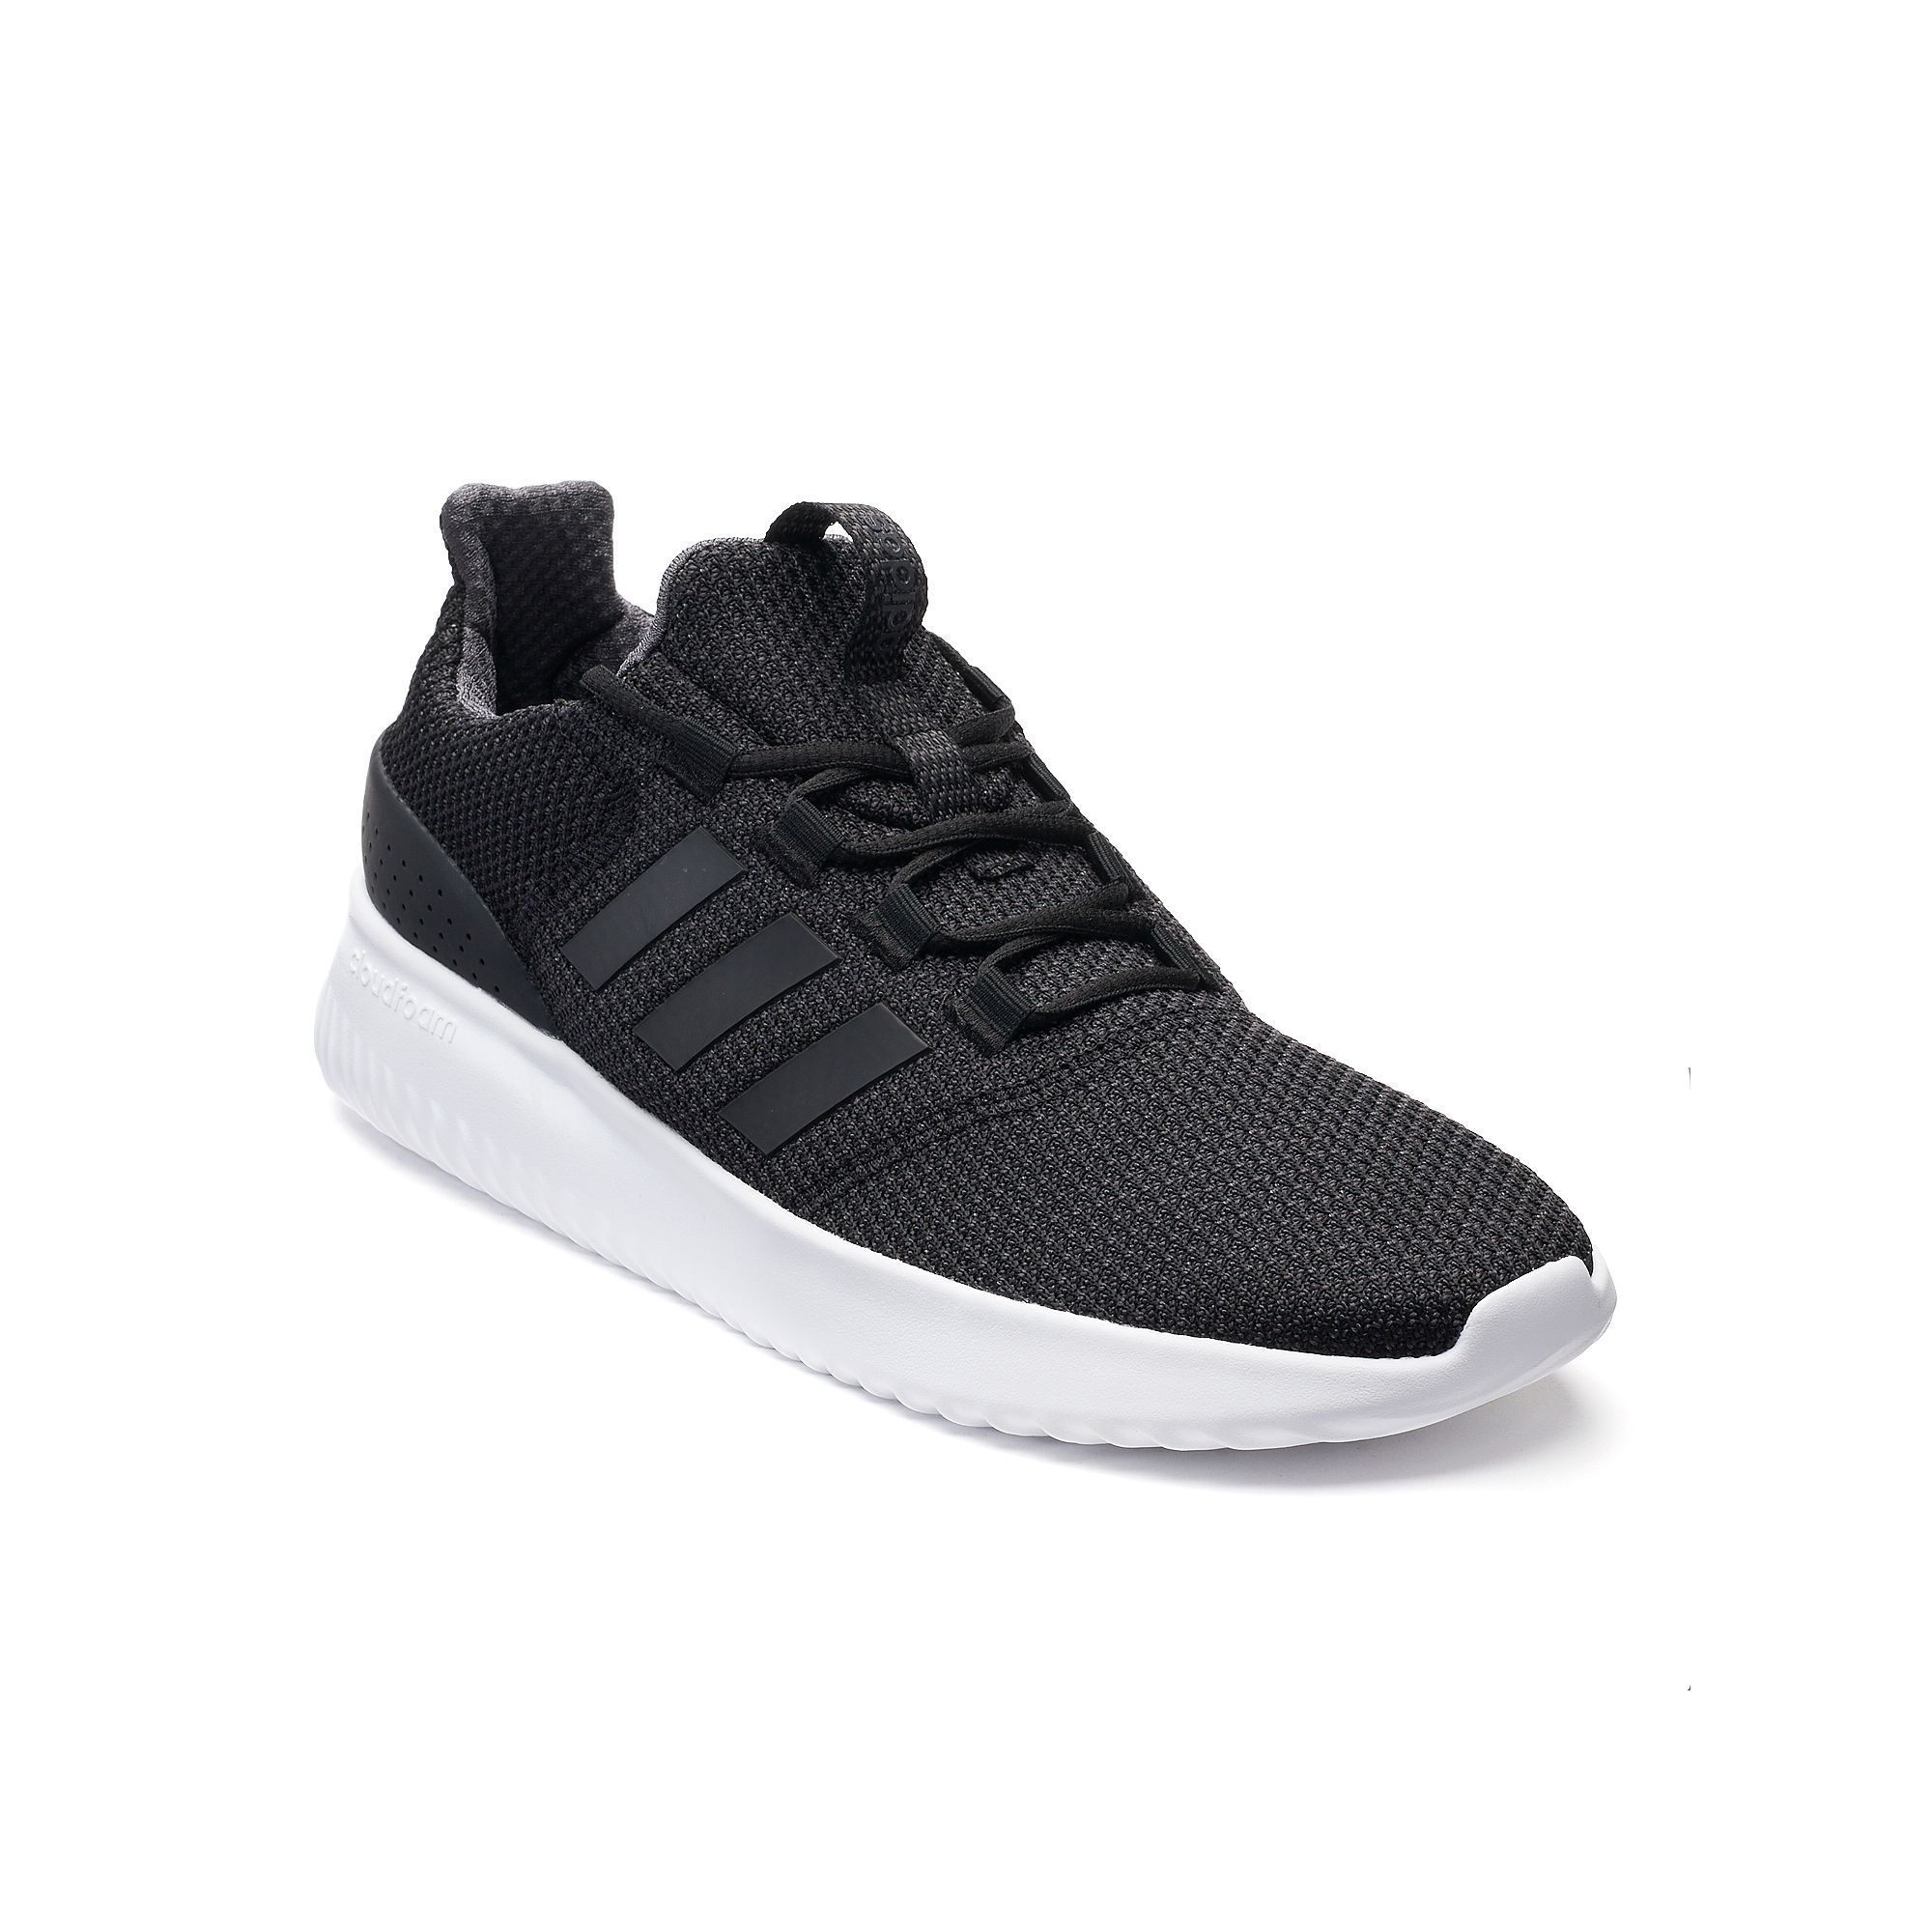 adidas neo kids' preschool cloudfoam ultimate shoes